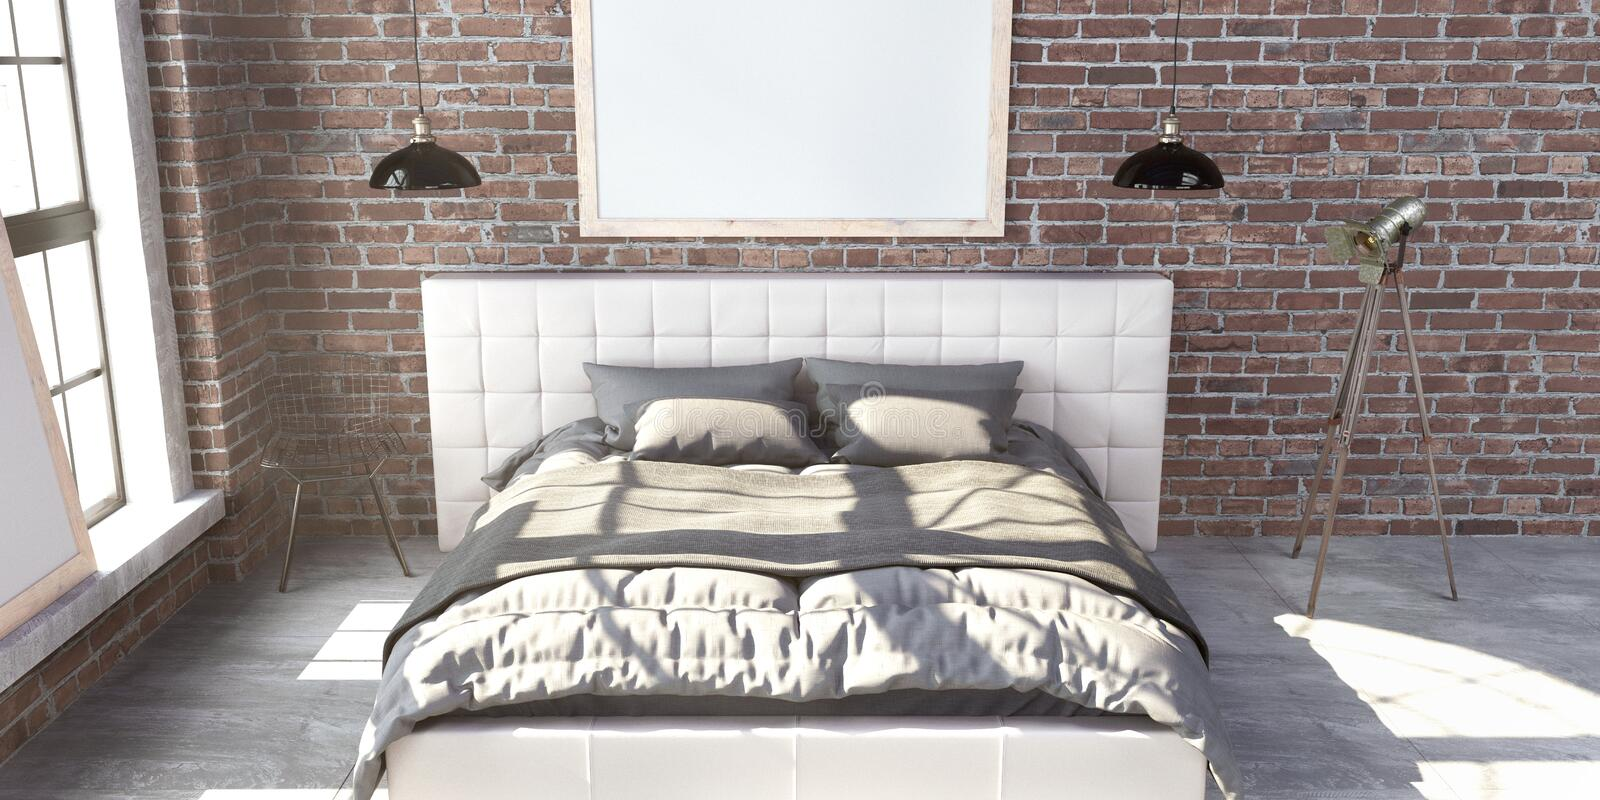 Quilted king size bed in the loft style bedroom. royalty free stock images